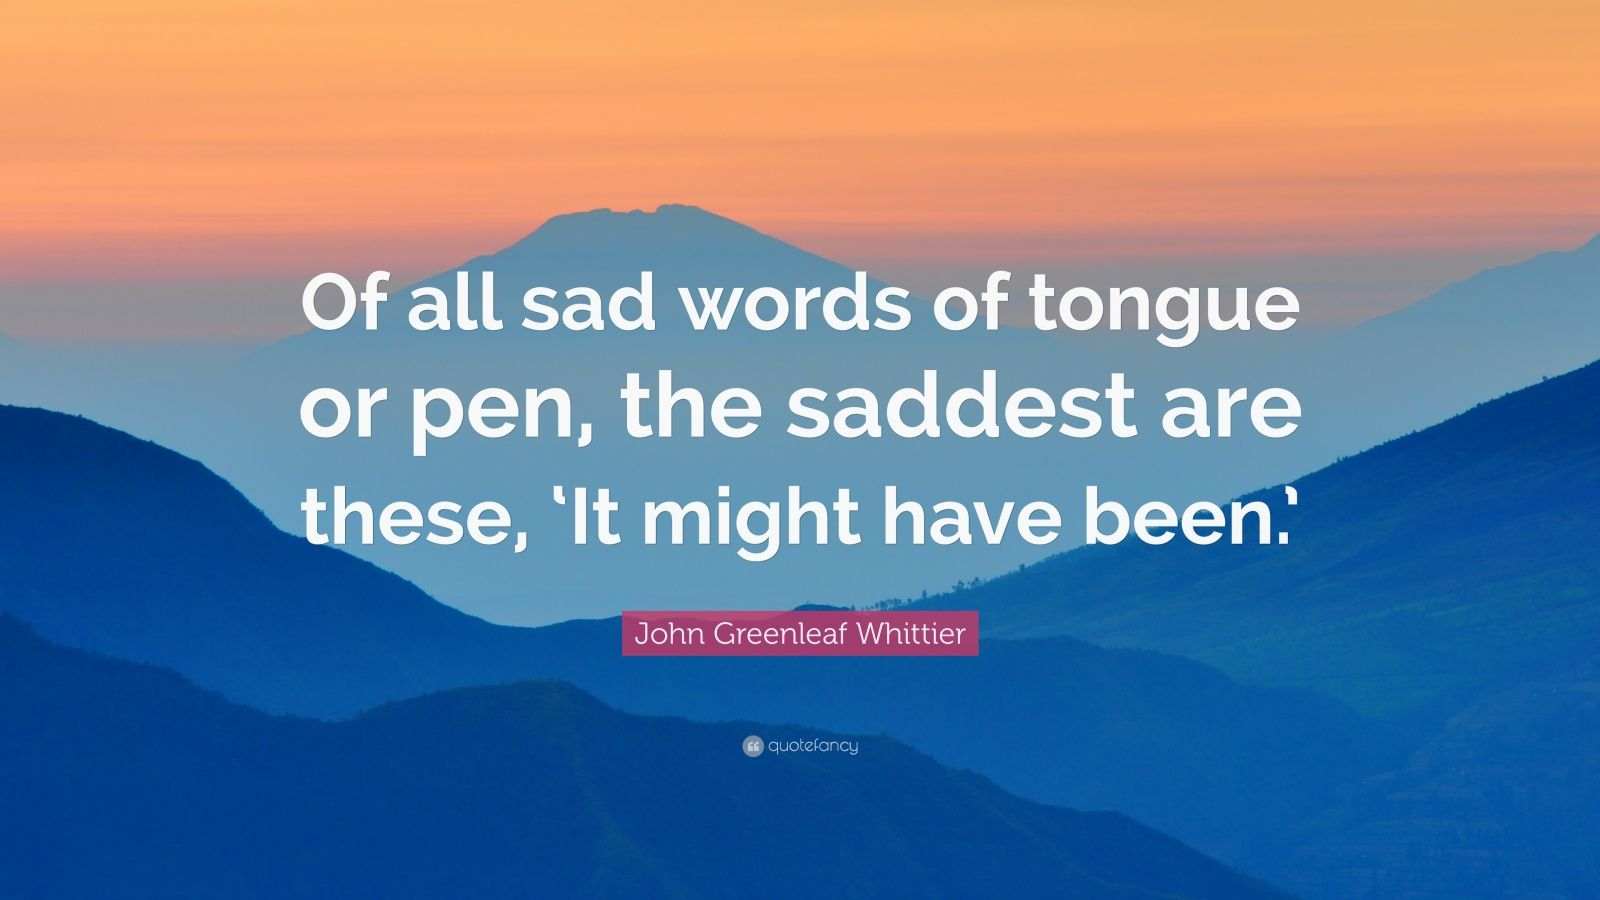 Change Quote Wallpaper John Greenleaf Whittier Quote Of All Sad Words Of Tongue